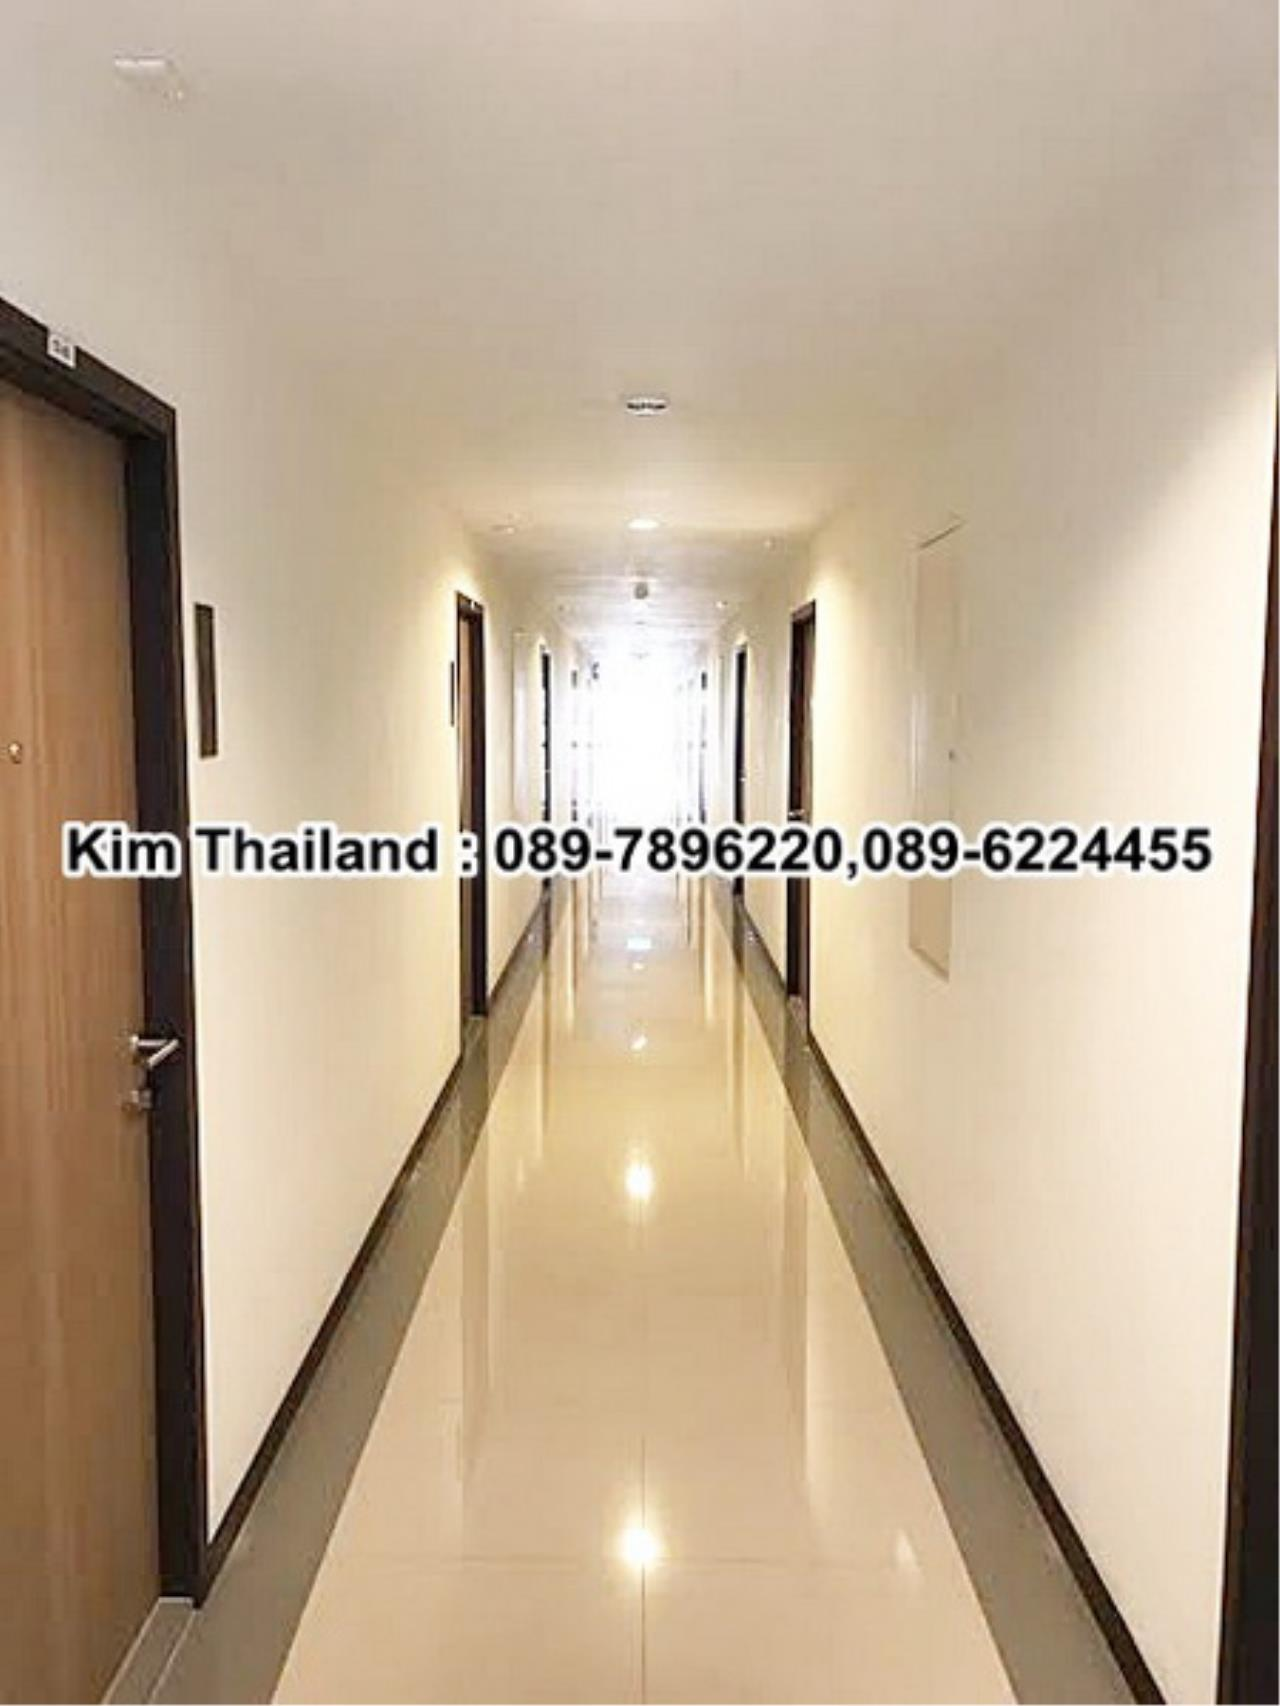 BKKcondorental Agency's For rent, Condo Metroluxe Rama 4., Area 28 sq.m. 1 bedroom. Rental 15,000 THB per month. 6